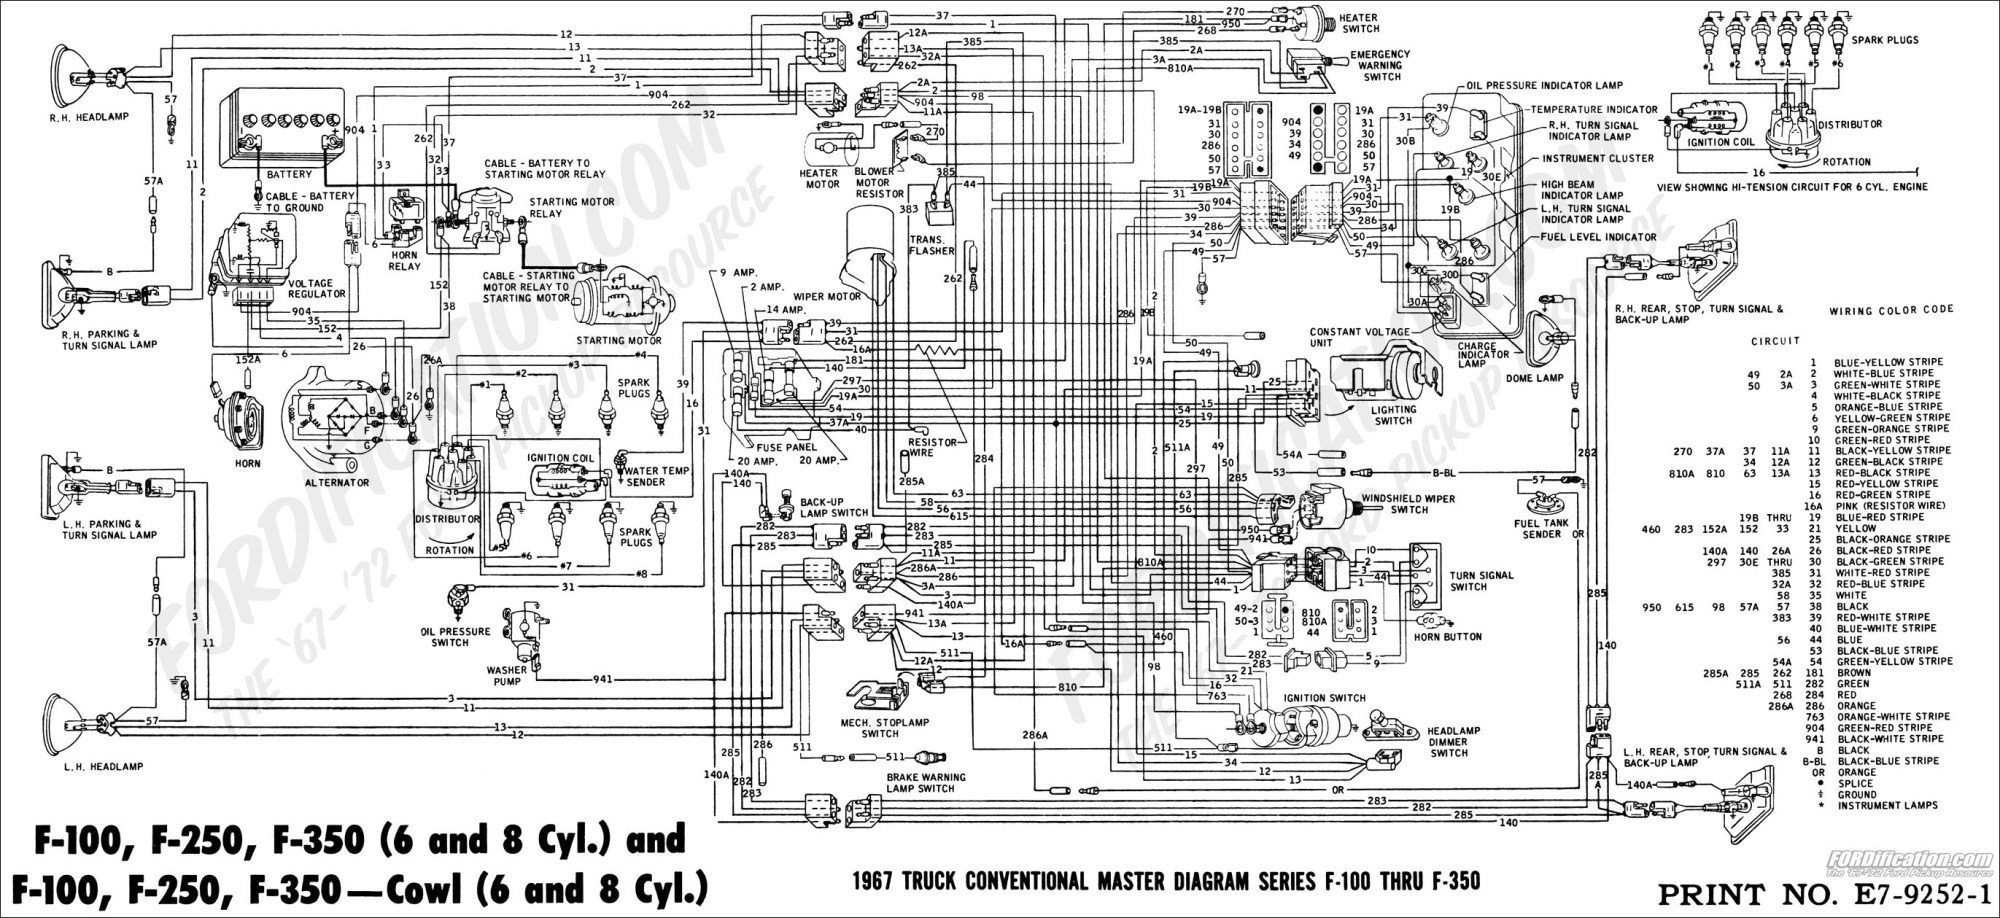 hight resolution of 92 ford bronco transmission wiring diagram wiring diagram split 1992 ford bronco wiring diagram 1992 ford bronco wiring diagram